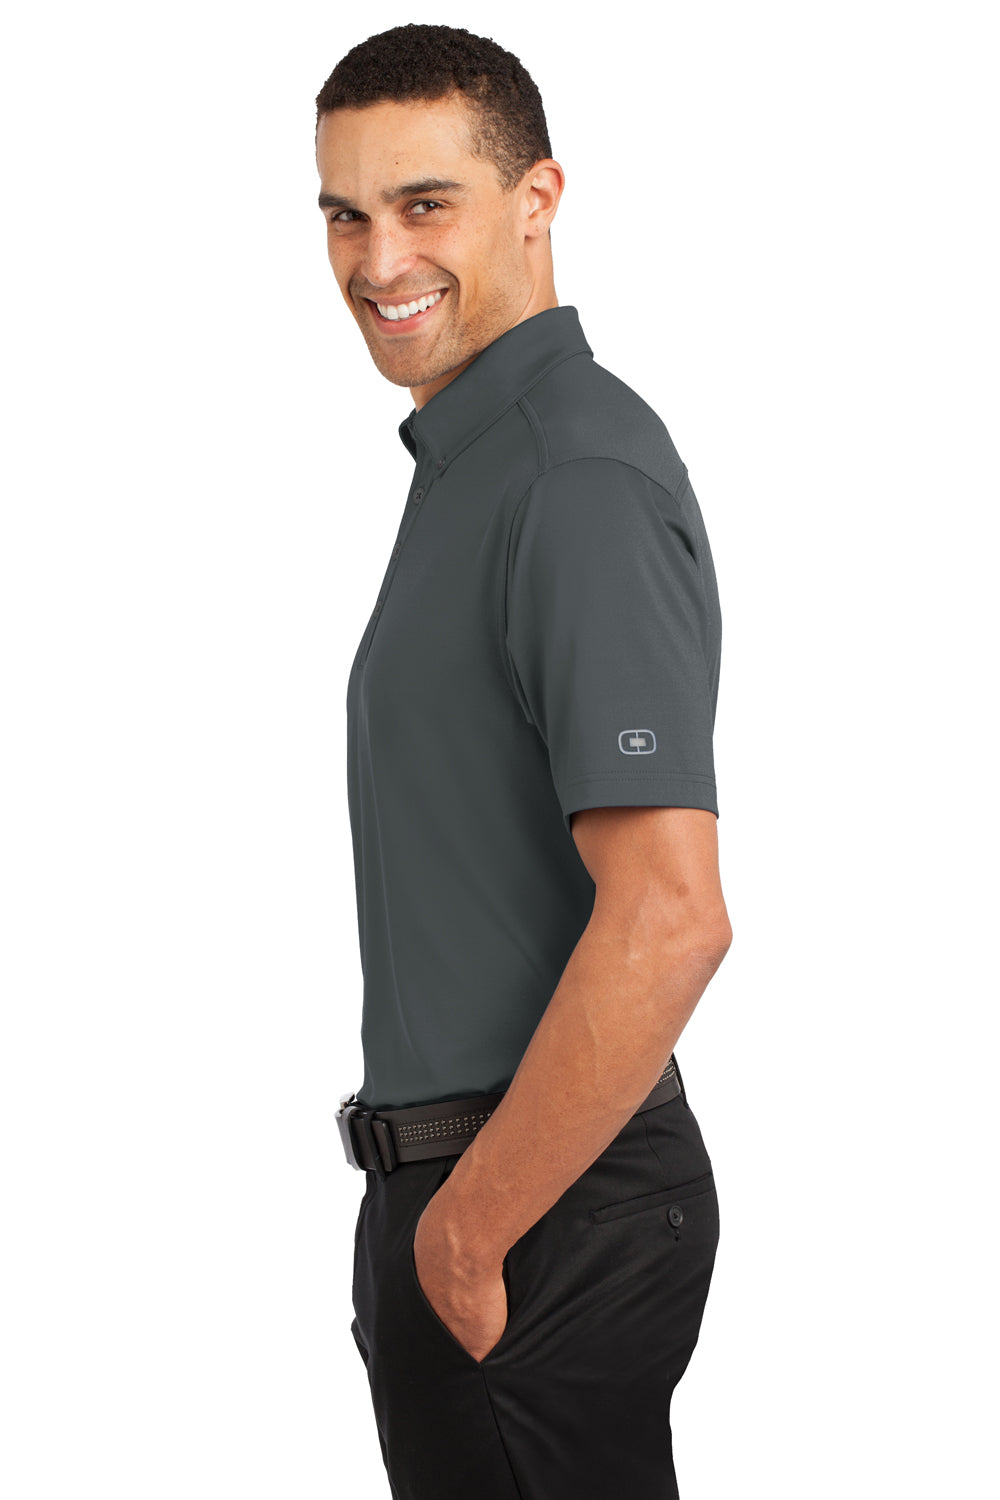 Ogio OG122 Mens Gauge Moisture Wicking Short Sleeve Polo Shirt Diesel Grey Side